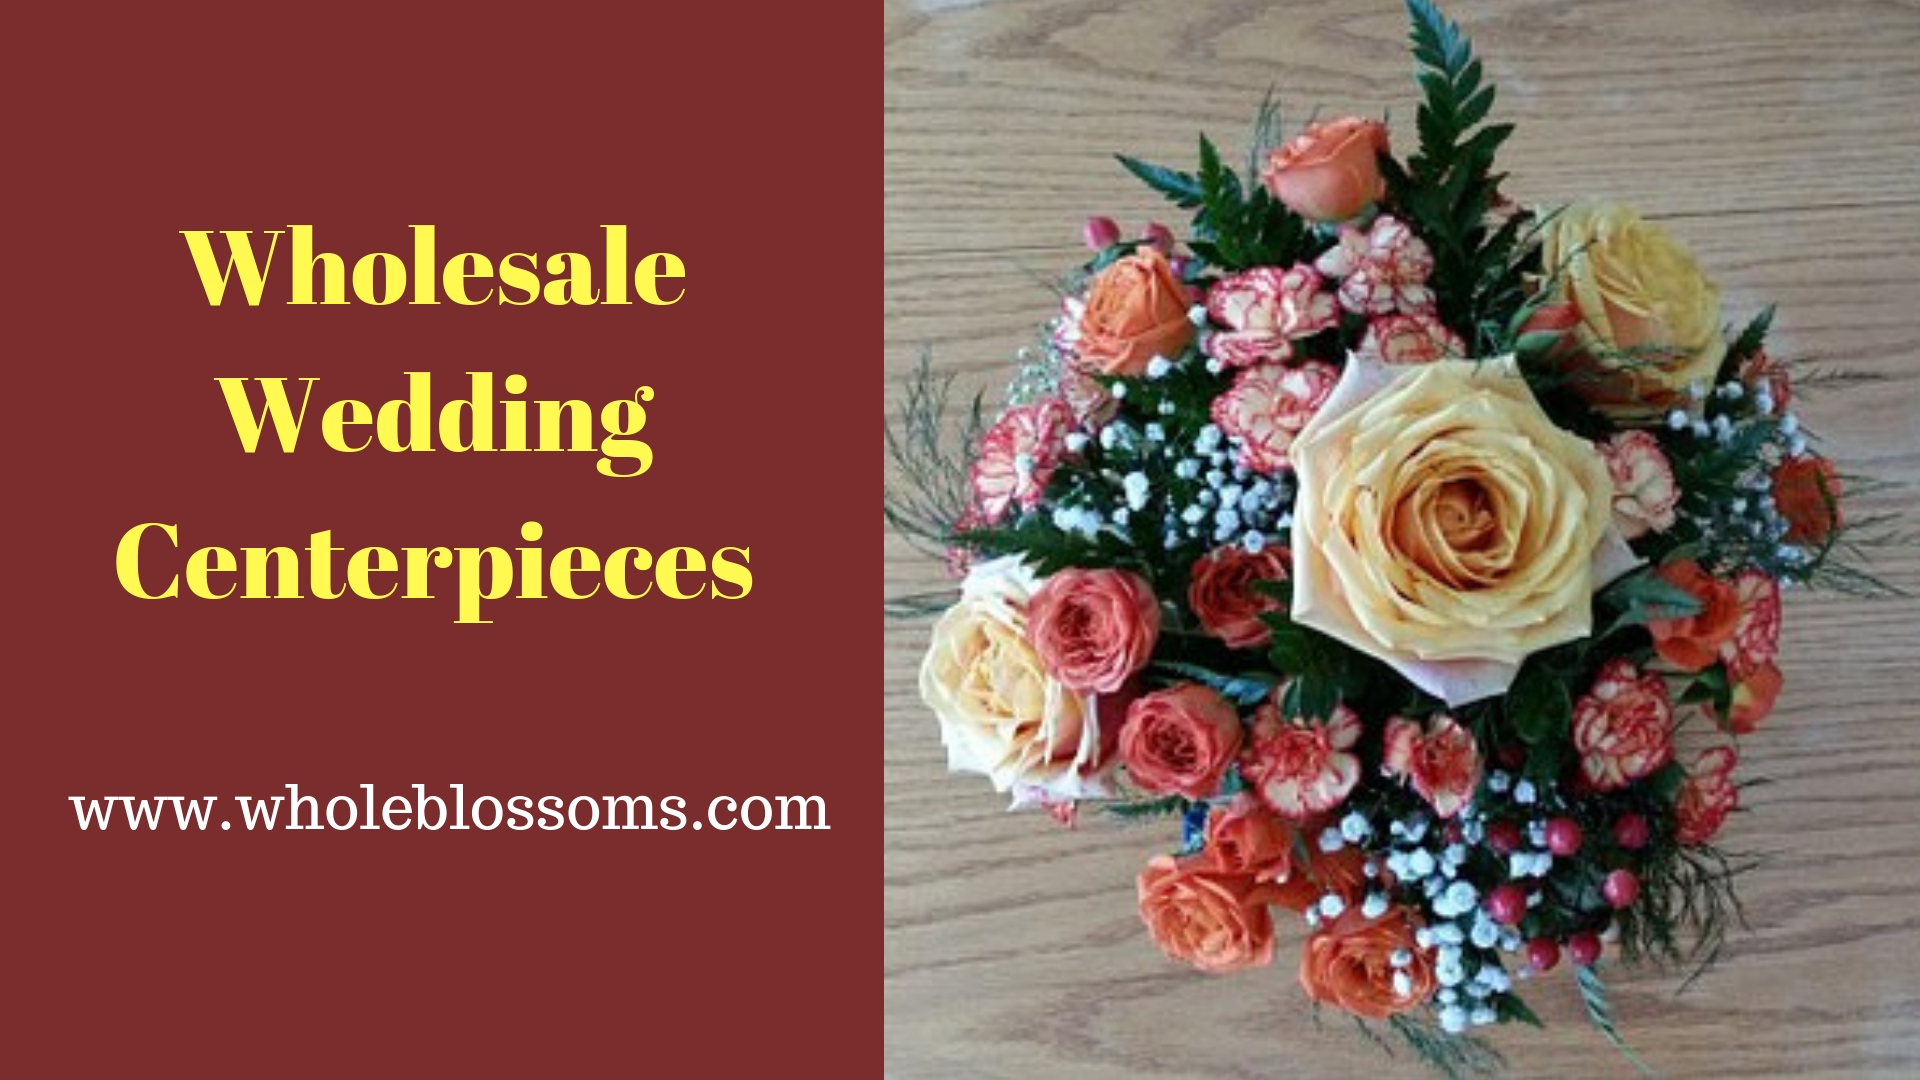 Purchase Affordable Wedding Centerpieces in Your Budget